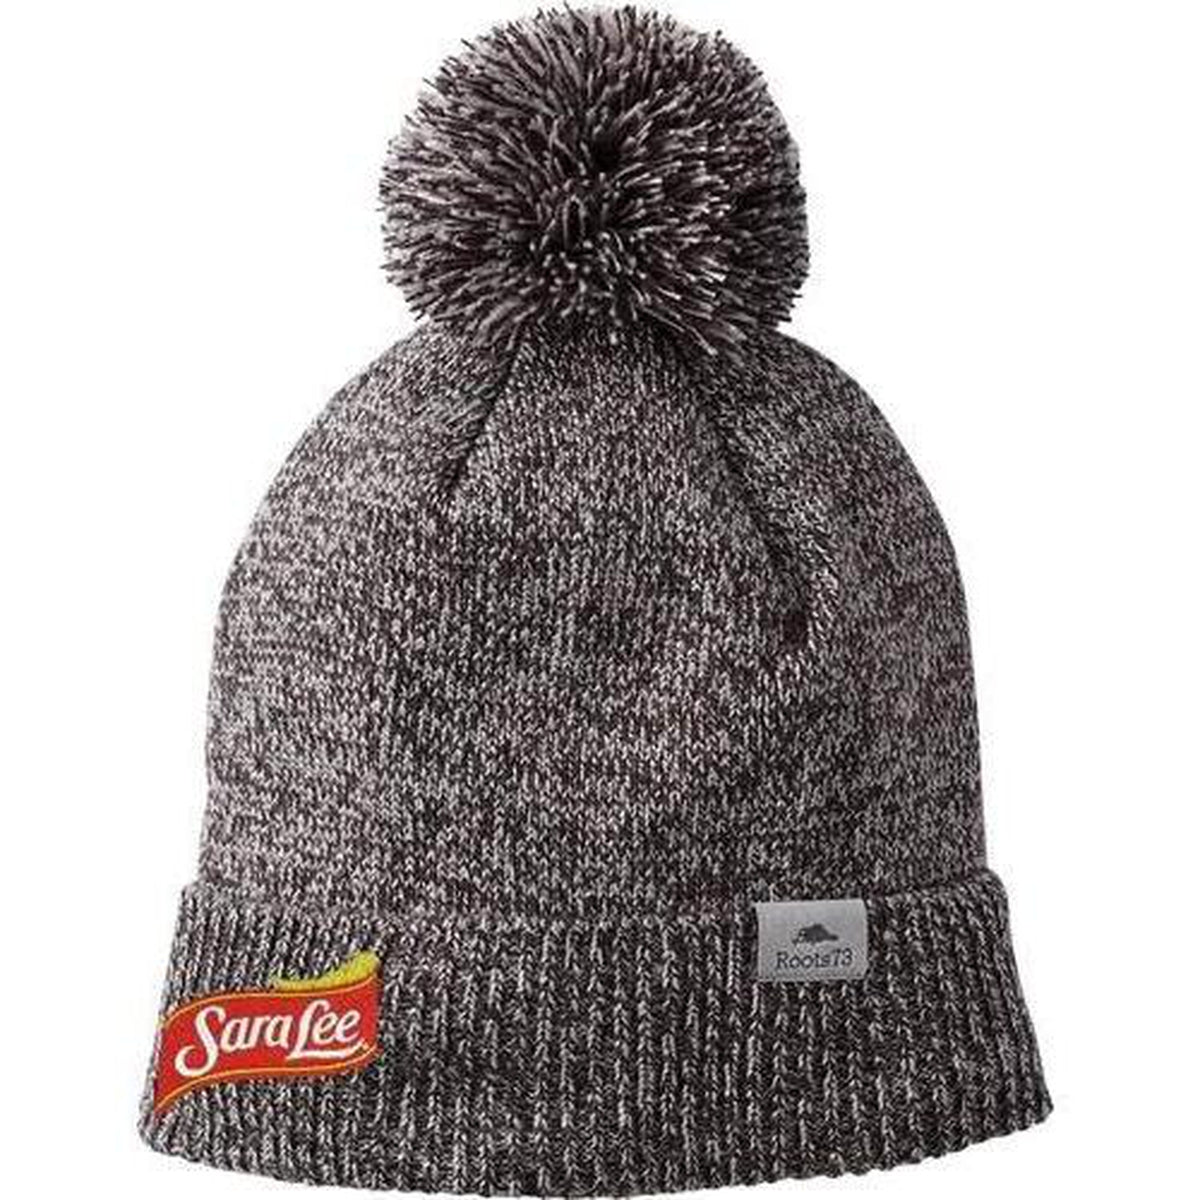 ROOTS73 SHELTY KNIT TOQUE